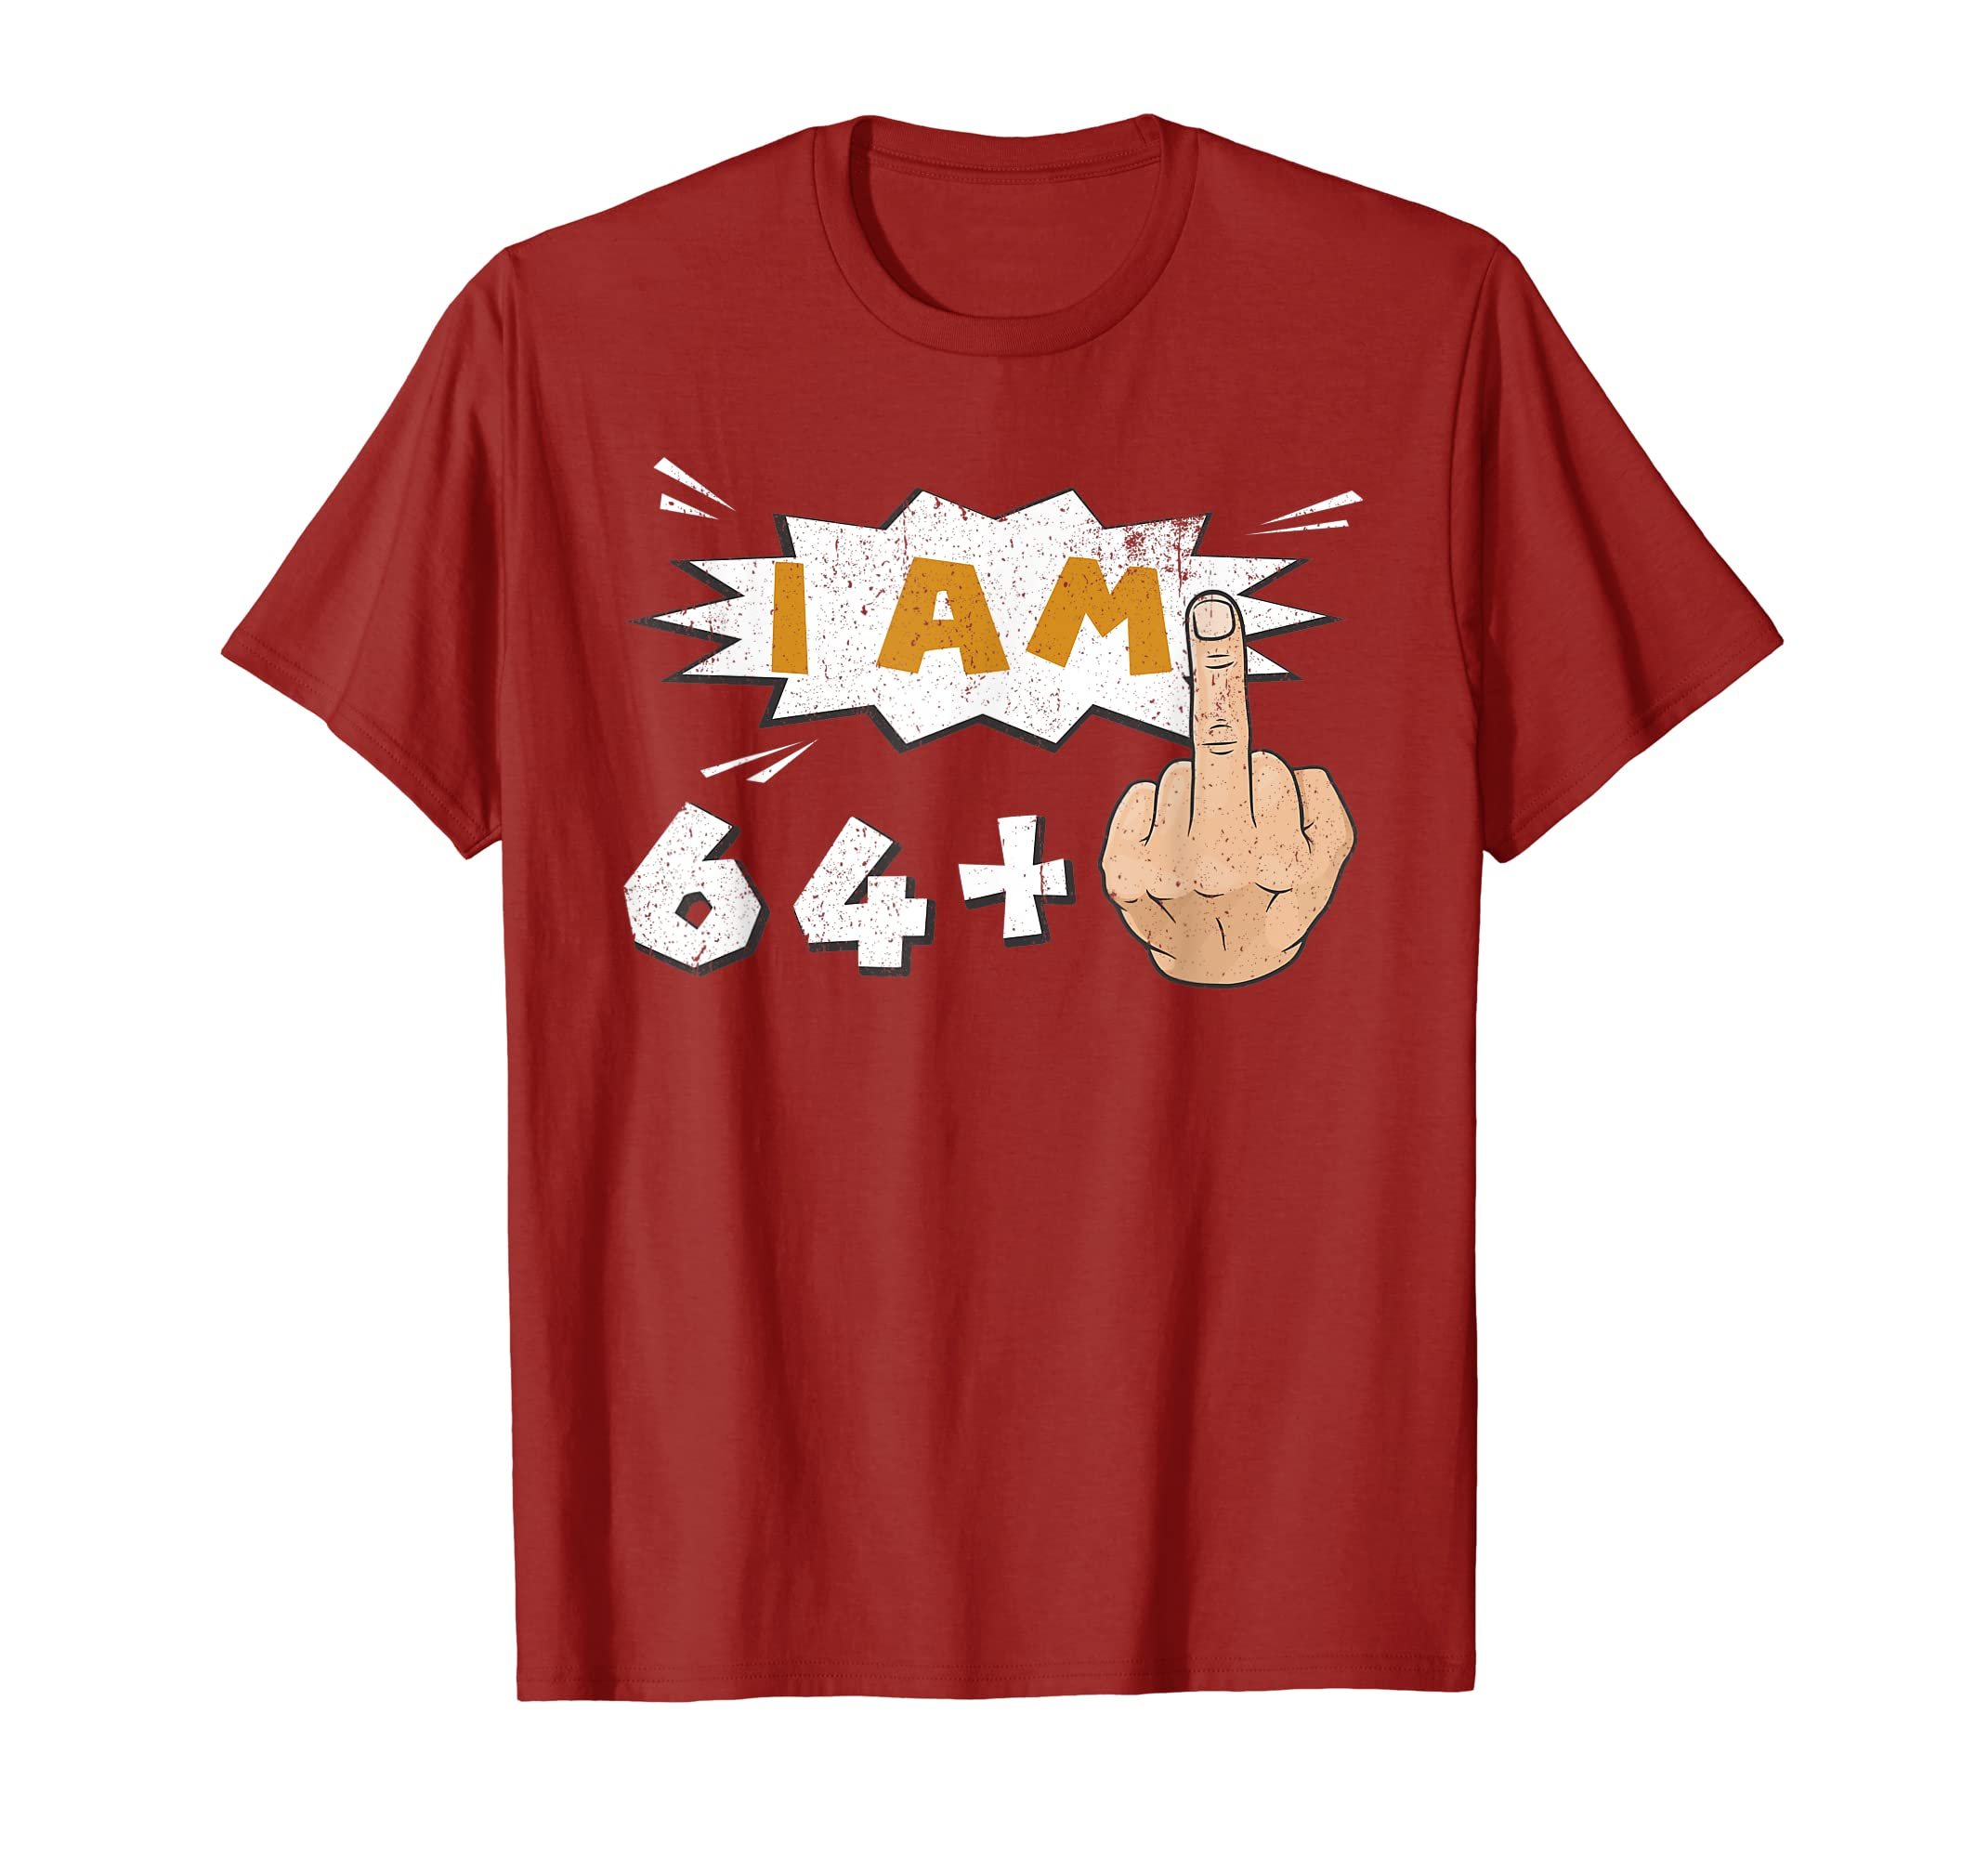 Amazon 65th Birthday Gift Ideas Funny T Shirt For Men And Women